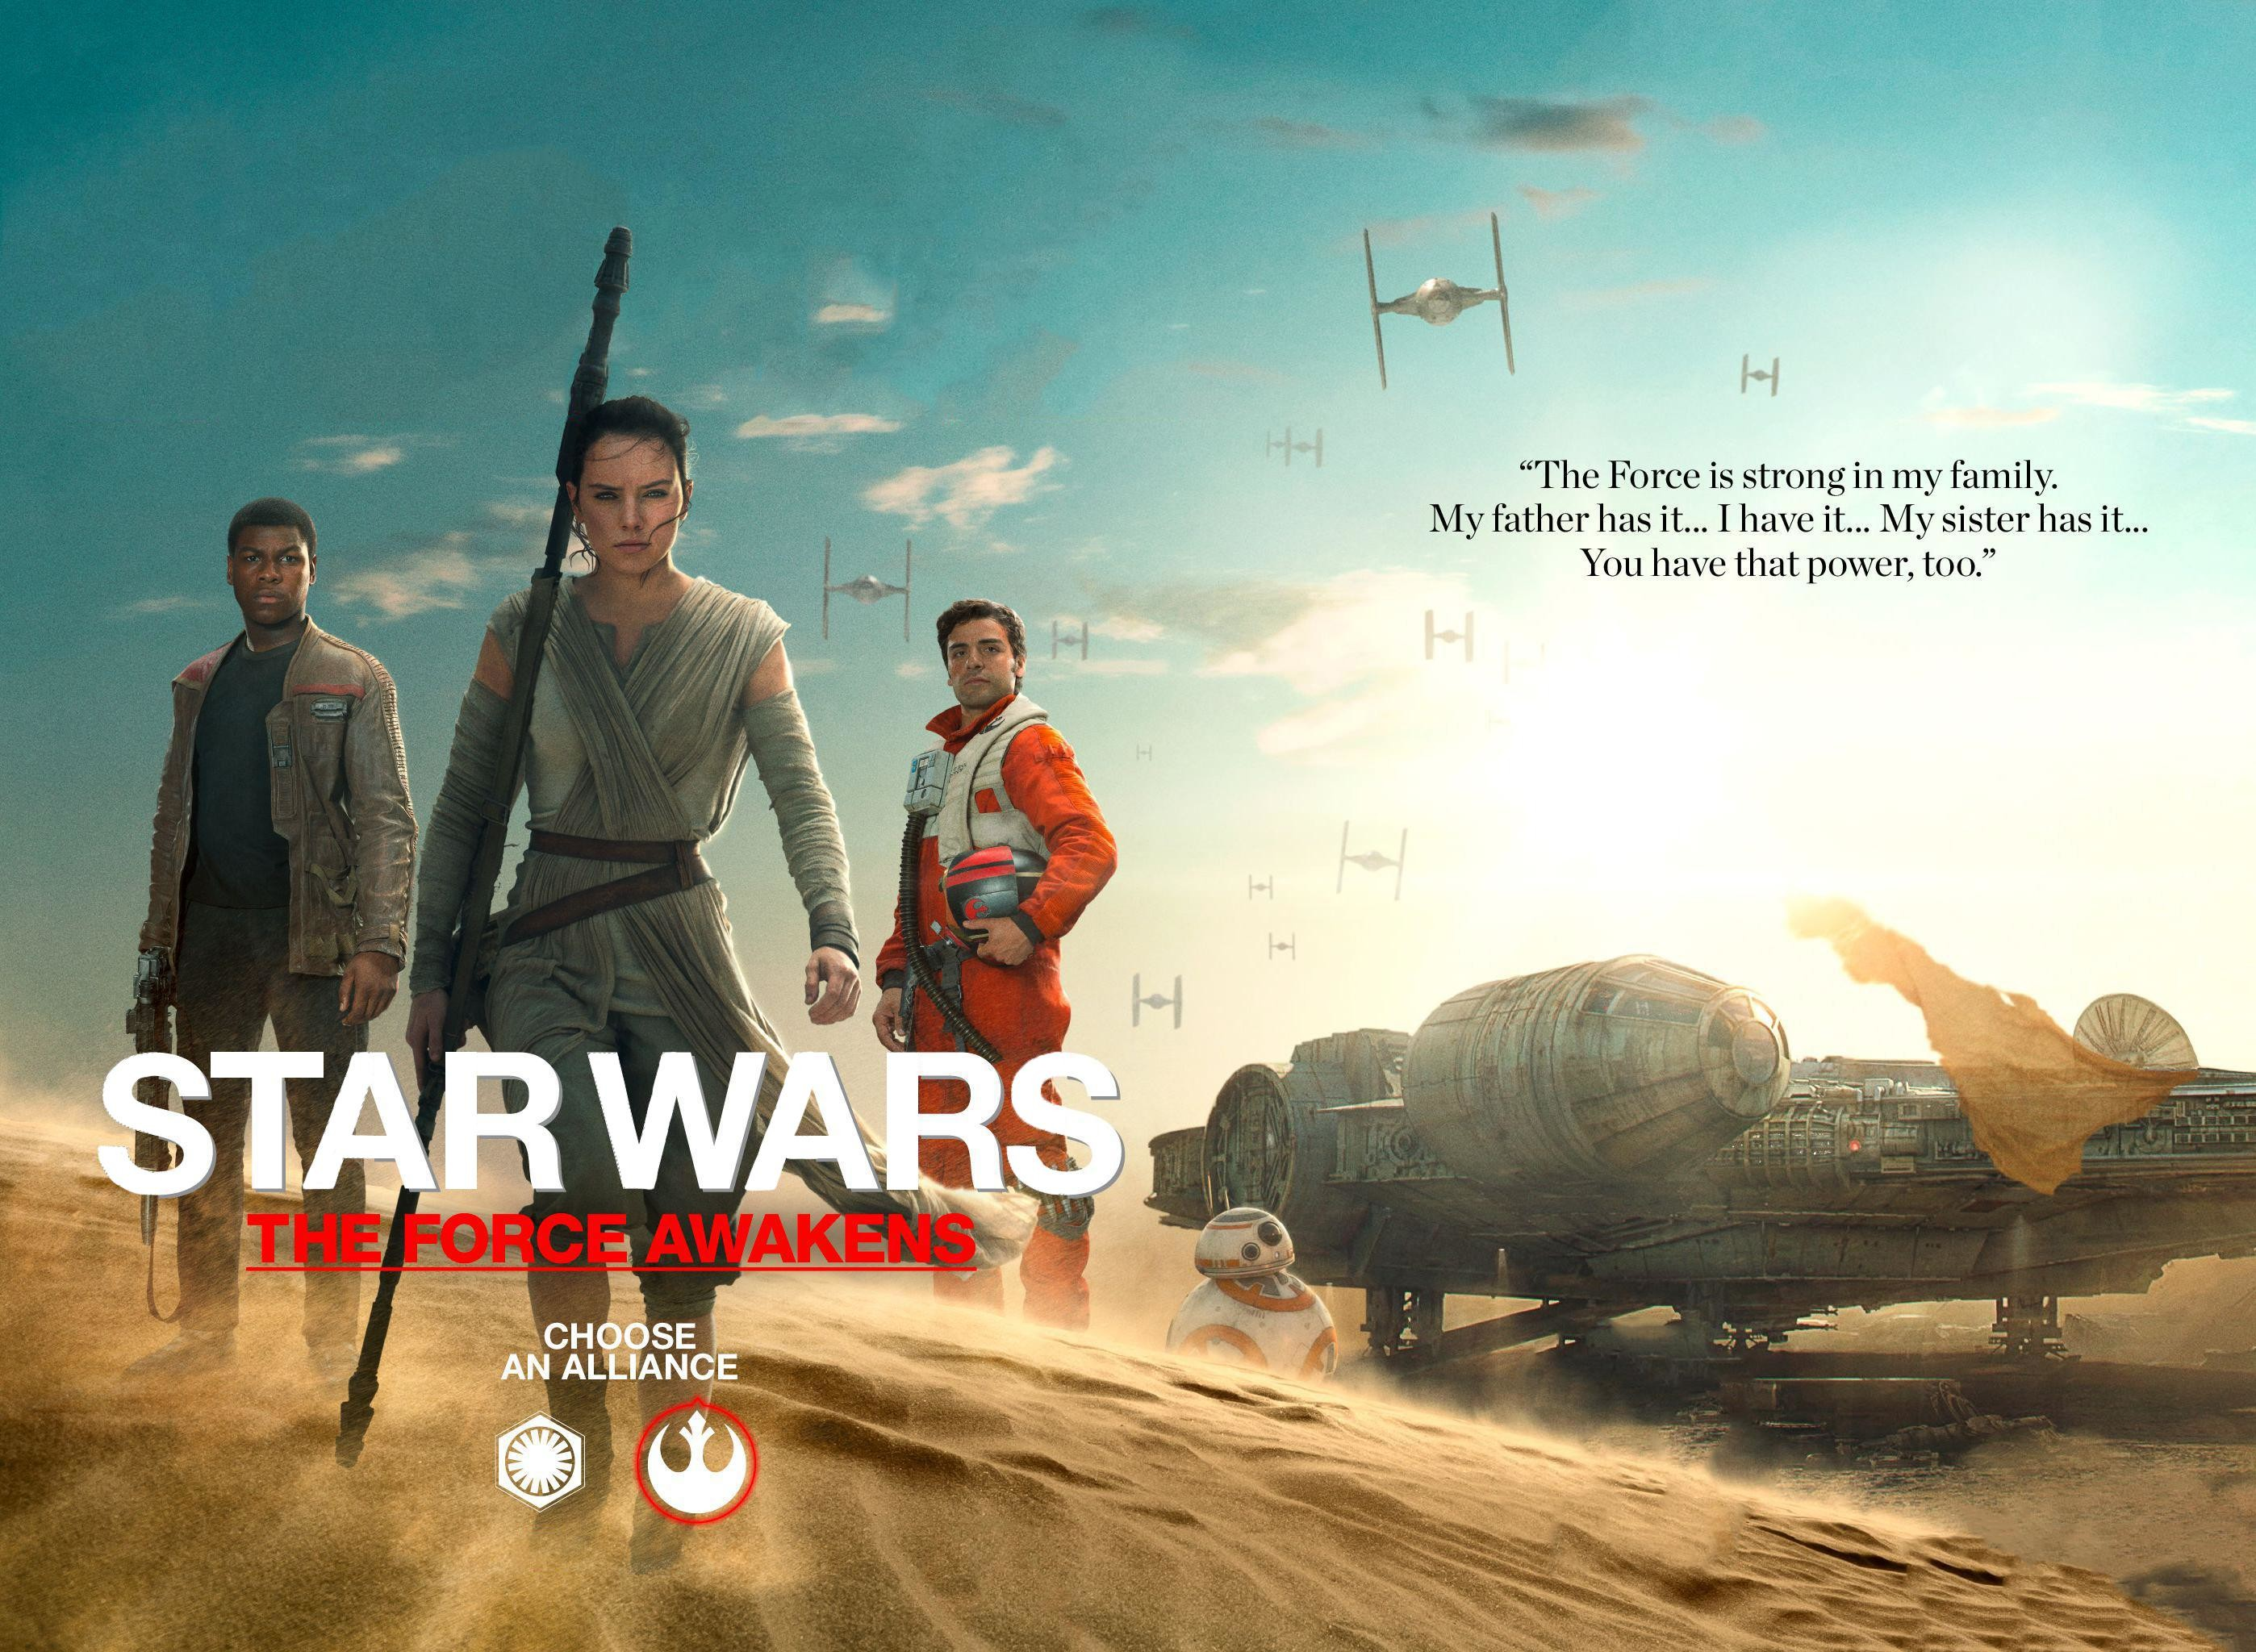 2796x2048 Star Wars: The Force Awakens Empire Magazine Covers (Wallpaper/Poster  Edits) : StarWars